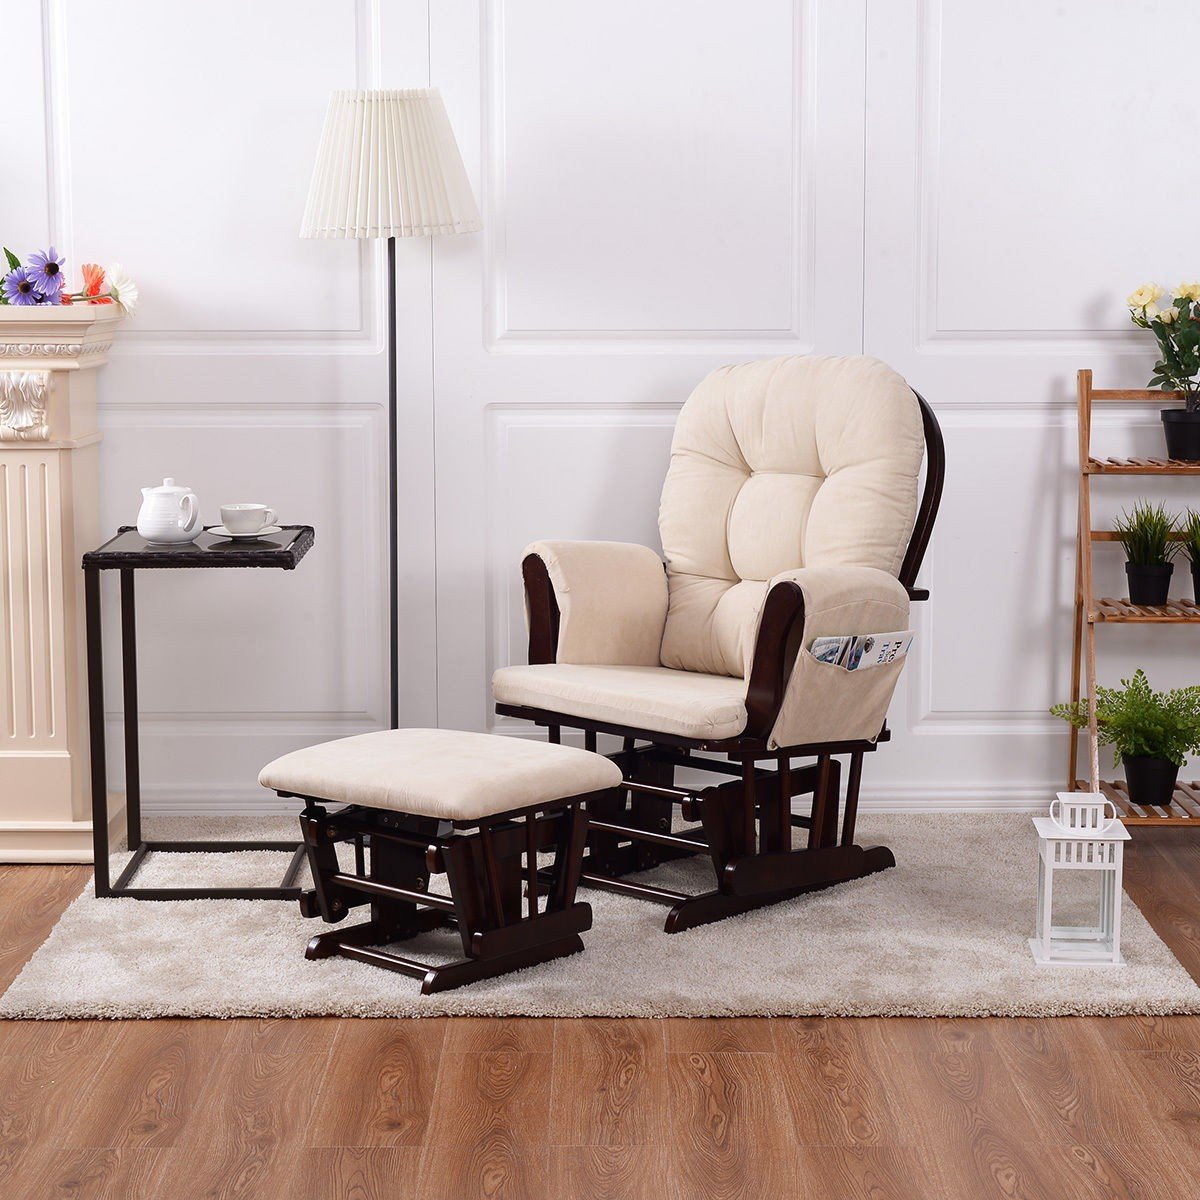 Baby Nursery Rocking Chair with Adjustable Backrest + Ottoman